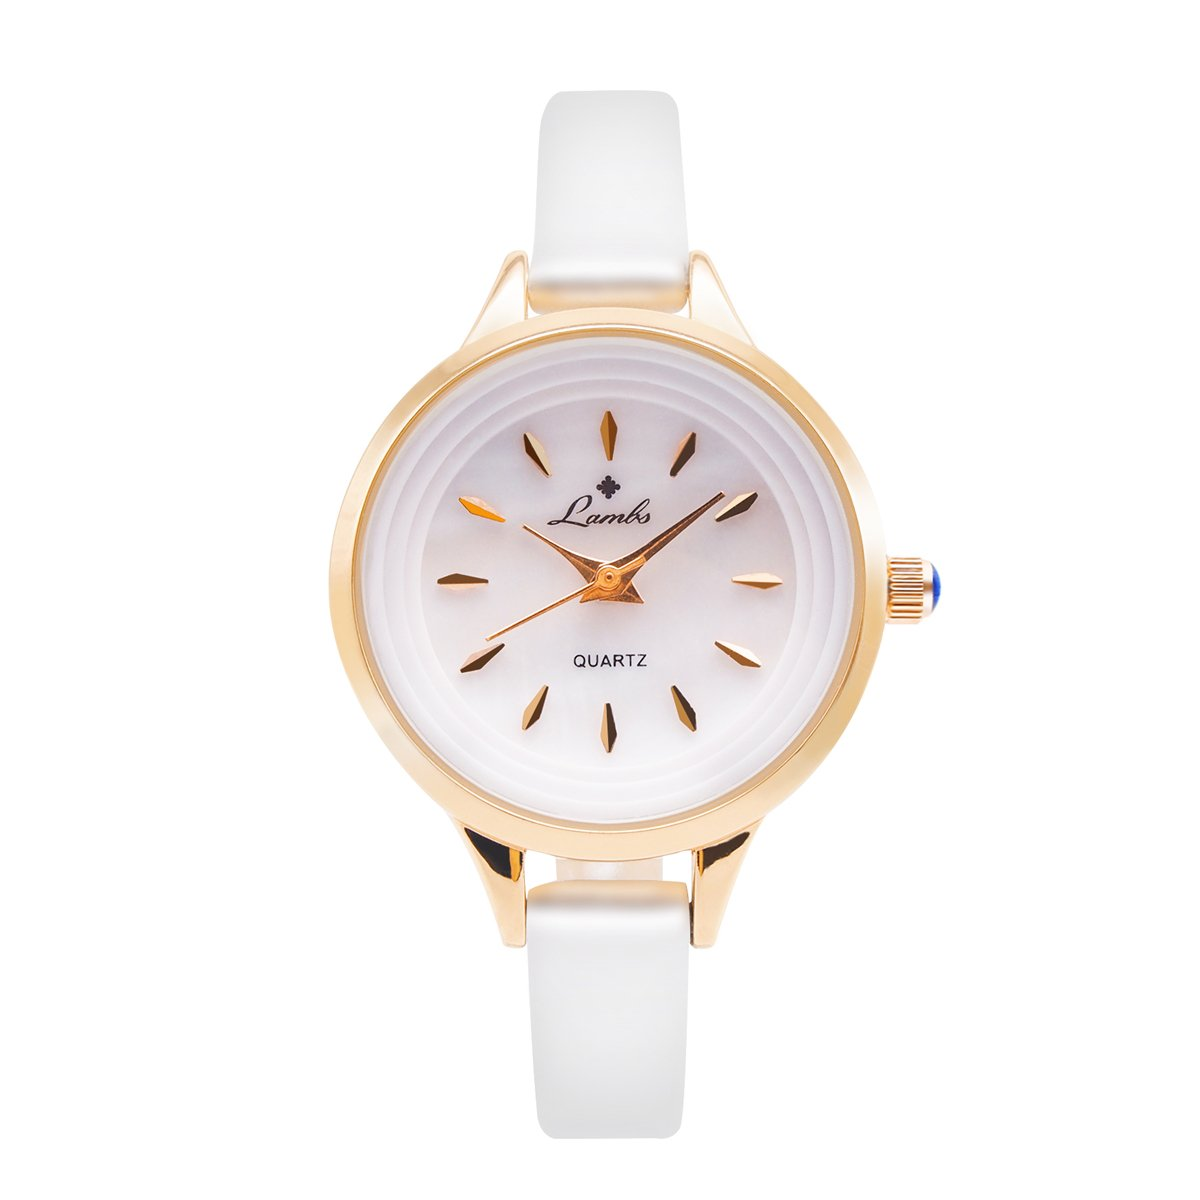 Girls Watches, Ladies Fashion Casual Waterproof Mother-of Pearl Dial Wrist Watches for Woman and Young Girls Easy to Read Times Genuine Leather Band Watches(White)